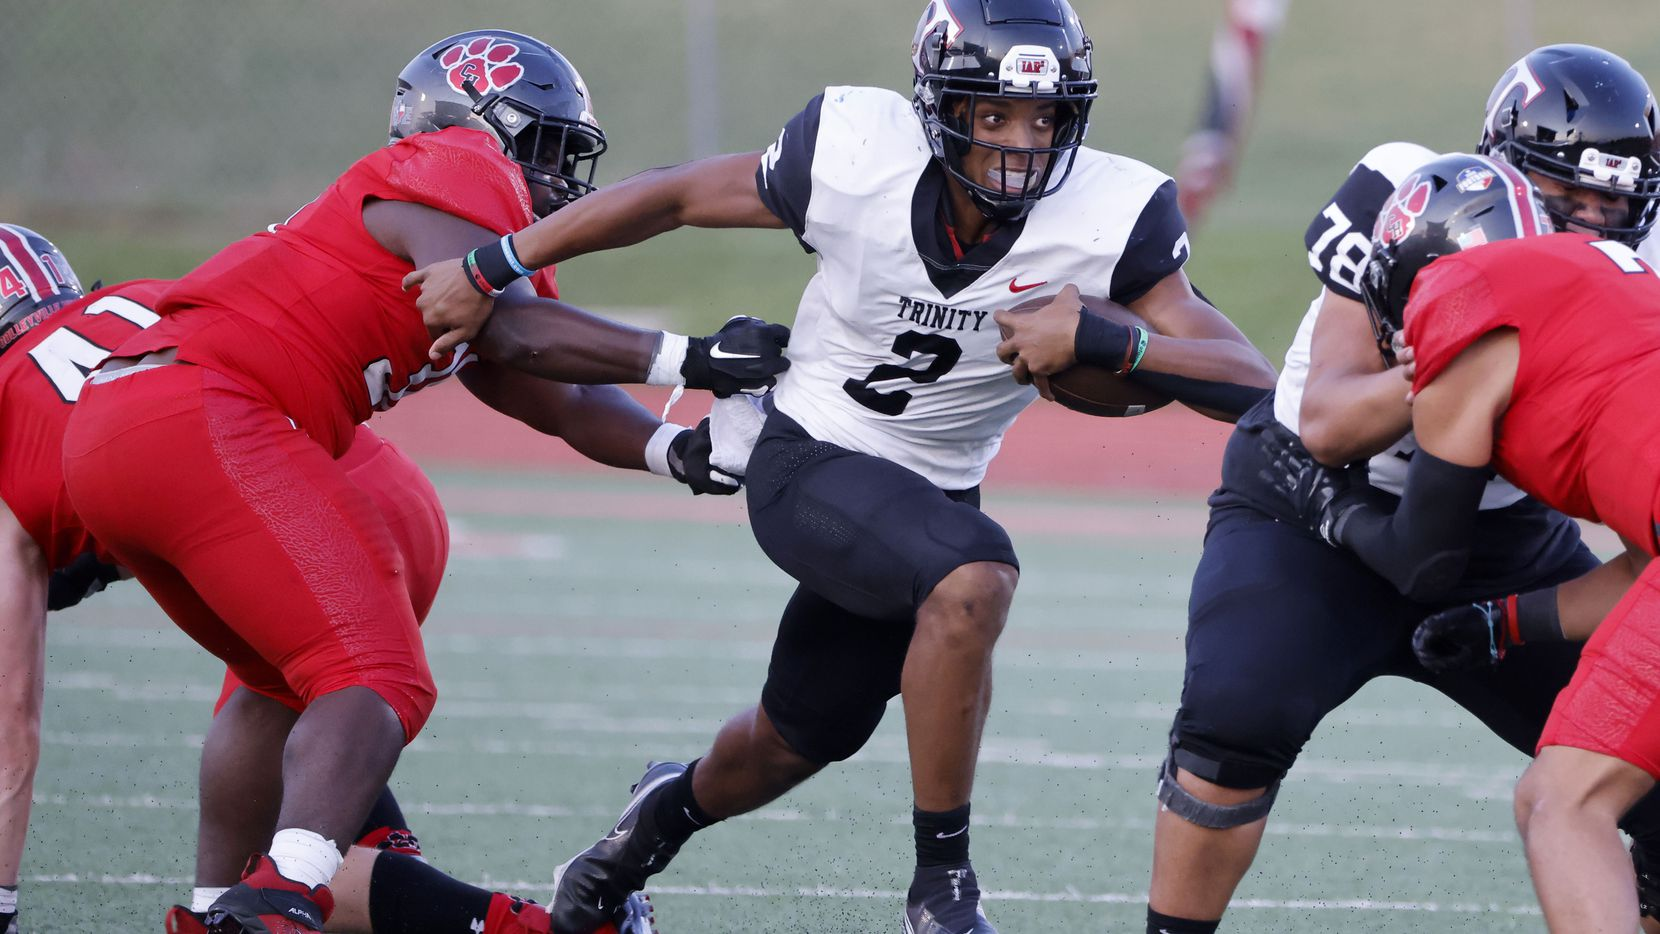 Colleyville defender Elijah Omar (left) tries to stop Euless Trinity quarterback Ollie Gordon (2) during the first half of a high school football game in Grapevine, Texas on Friday, Sept. 10, 2021.